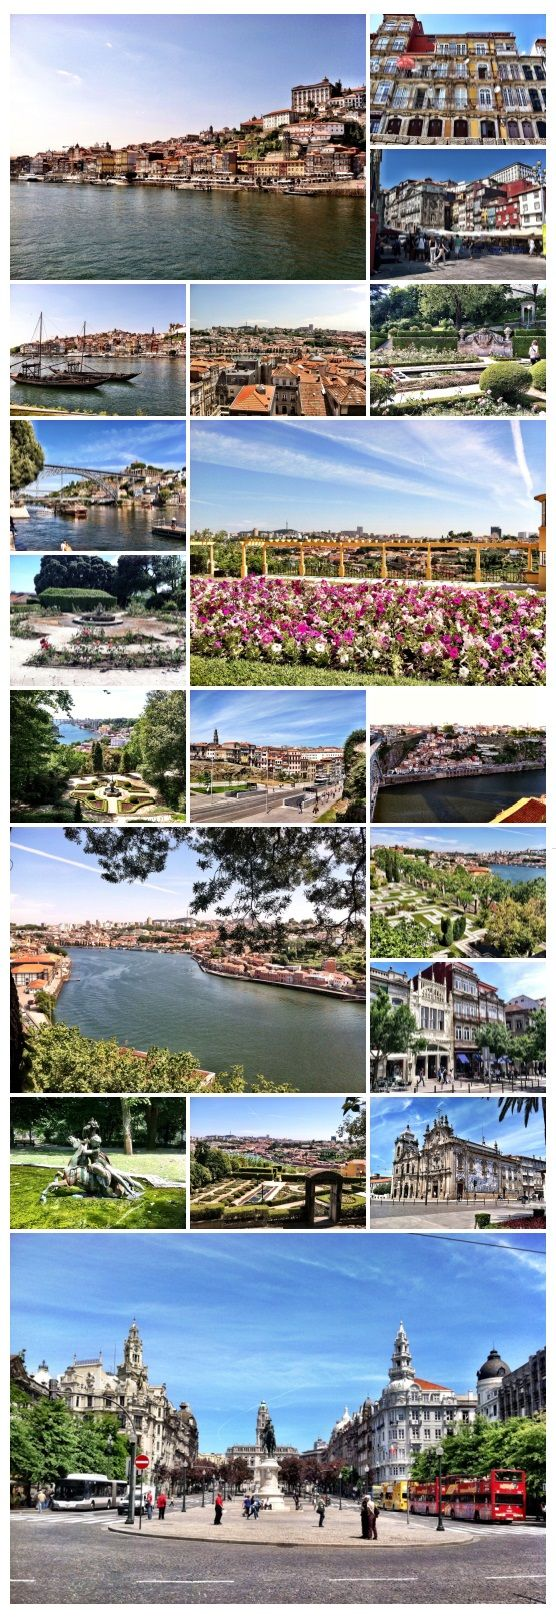 Porto Lookbook: Porto! A City of Fantasy - via Jetset Times 14.06.2014 | Porto is Portugal's second largest city, embedded alongside the River Douro and the Atlantic Ocean on the northwestern coast of the country. | #portugal #porto #wine